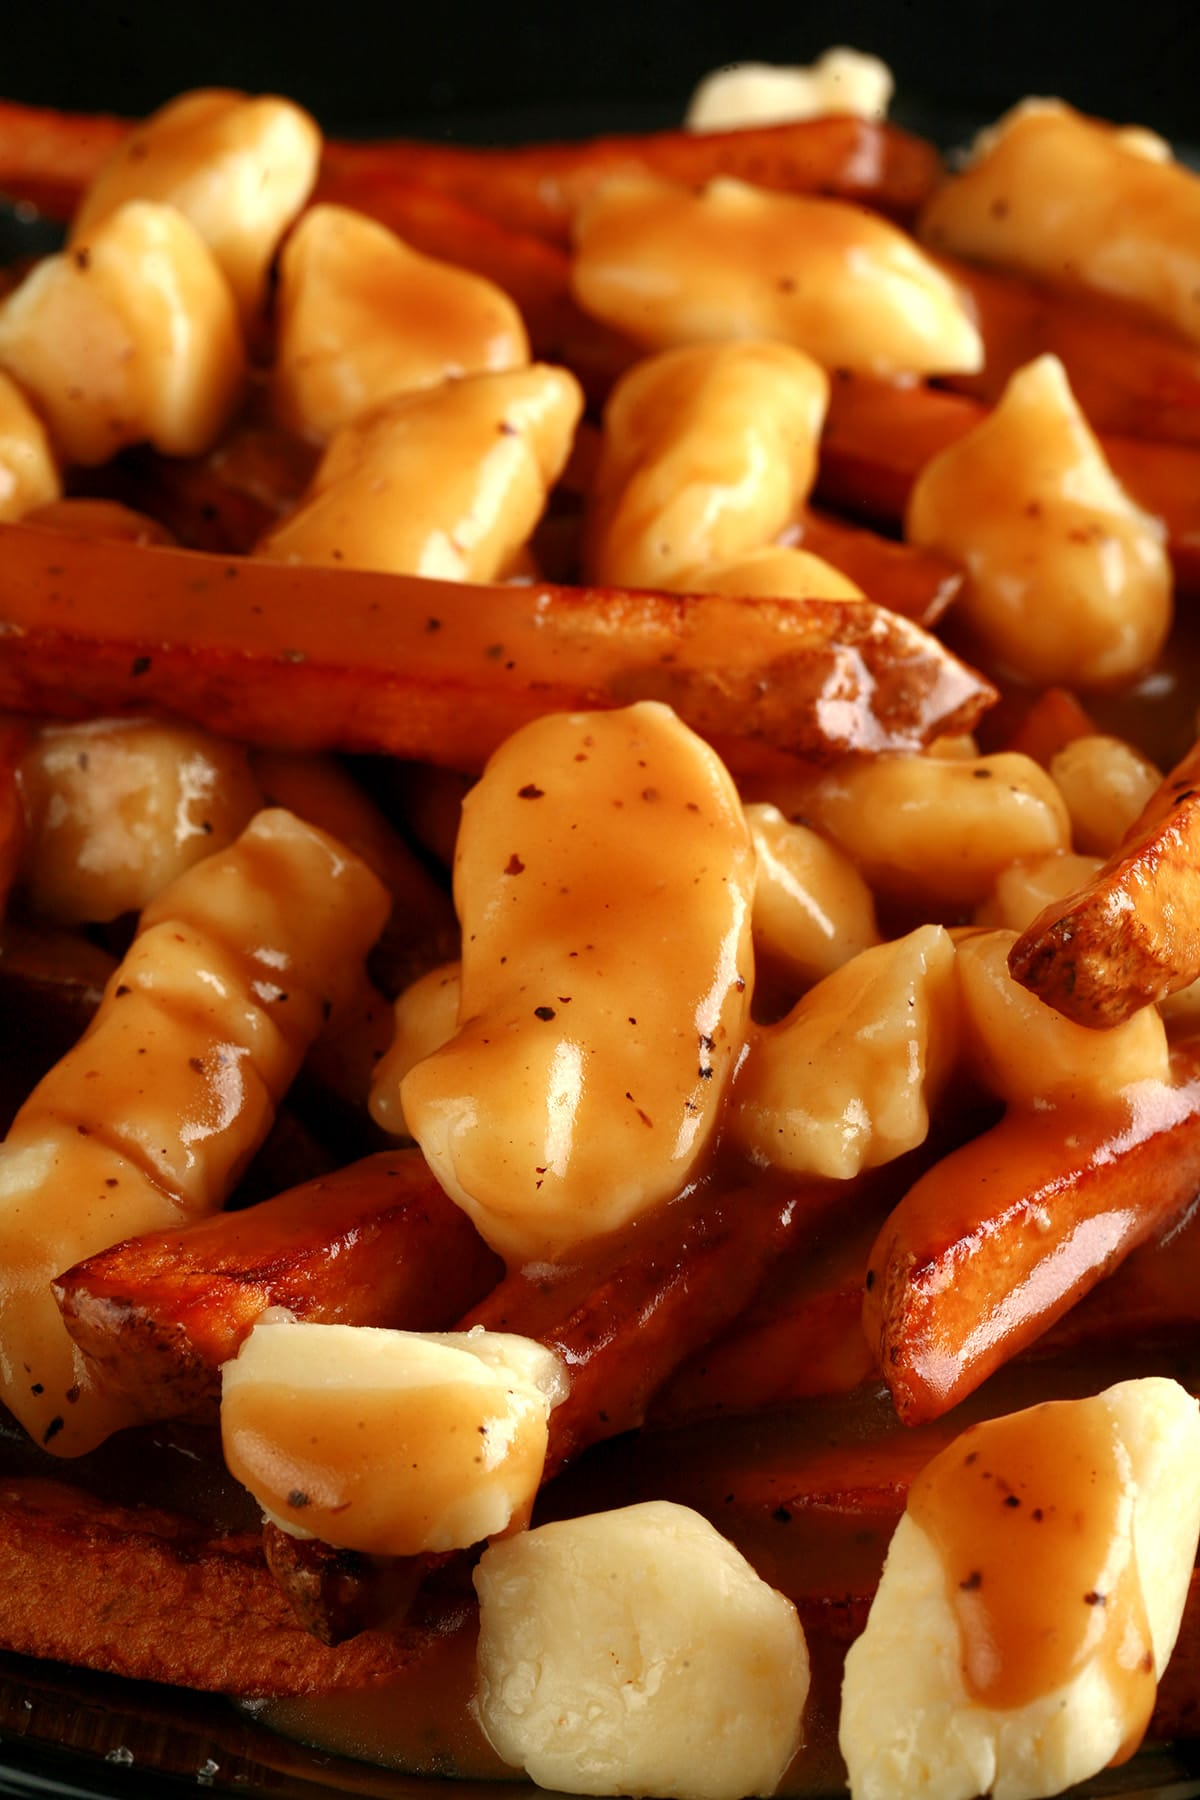 A close up view of poutine - fries, white cheese curds, and gravy.